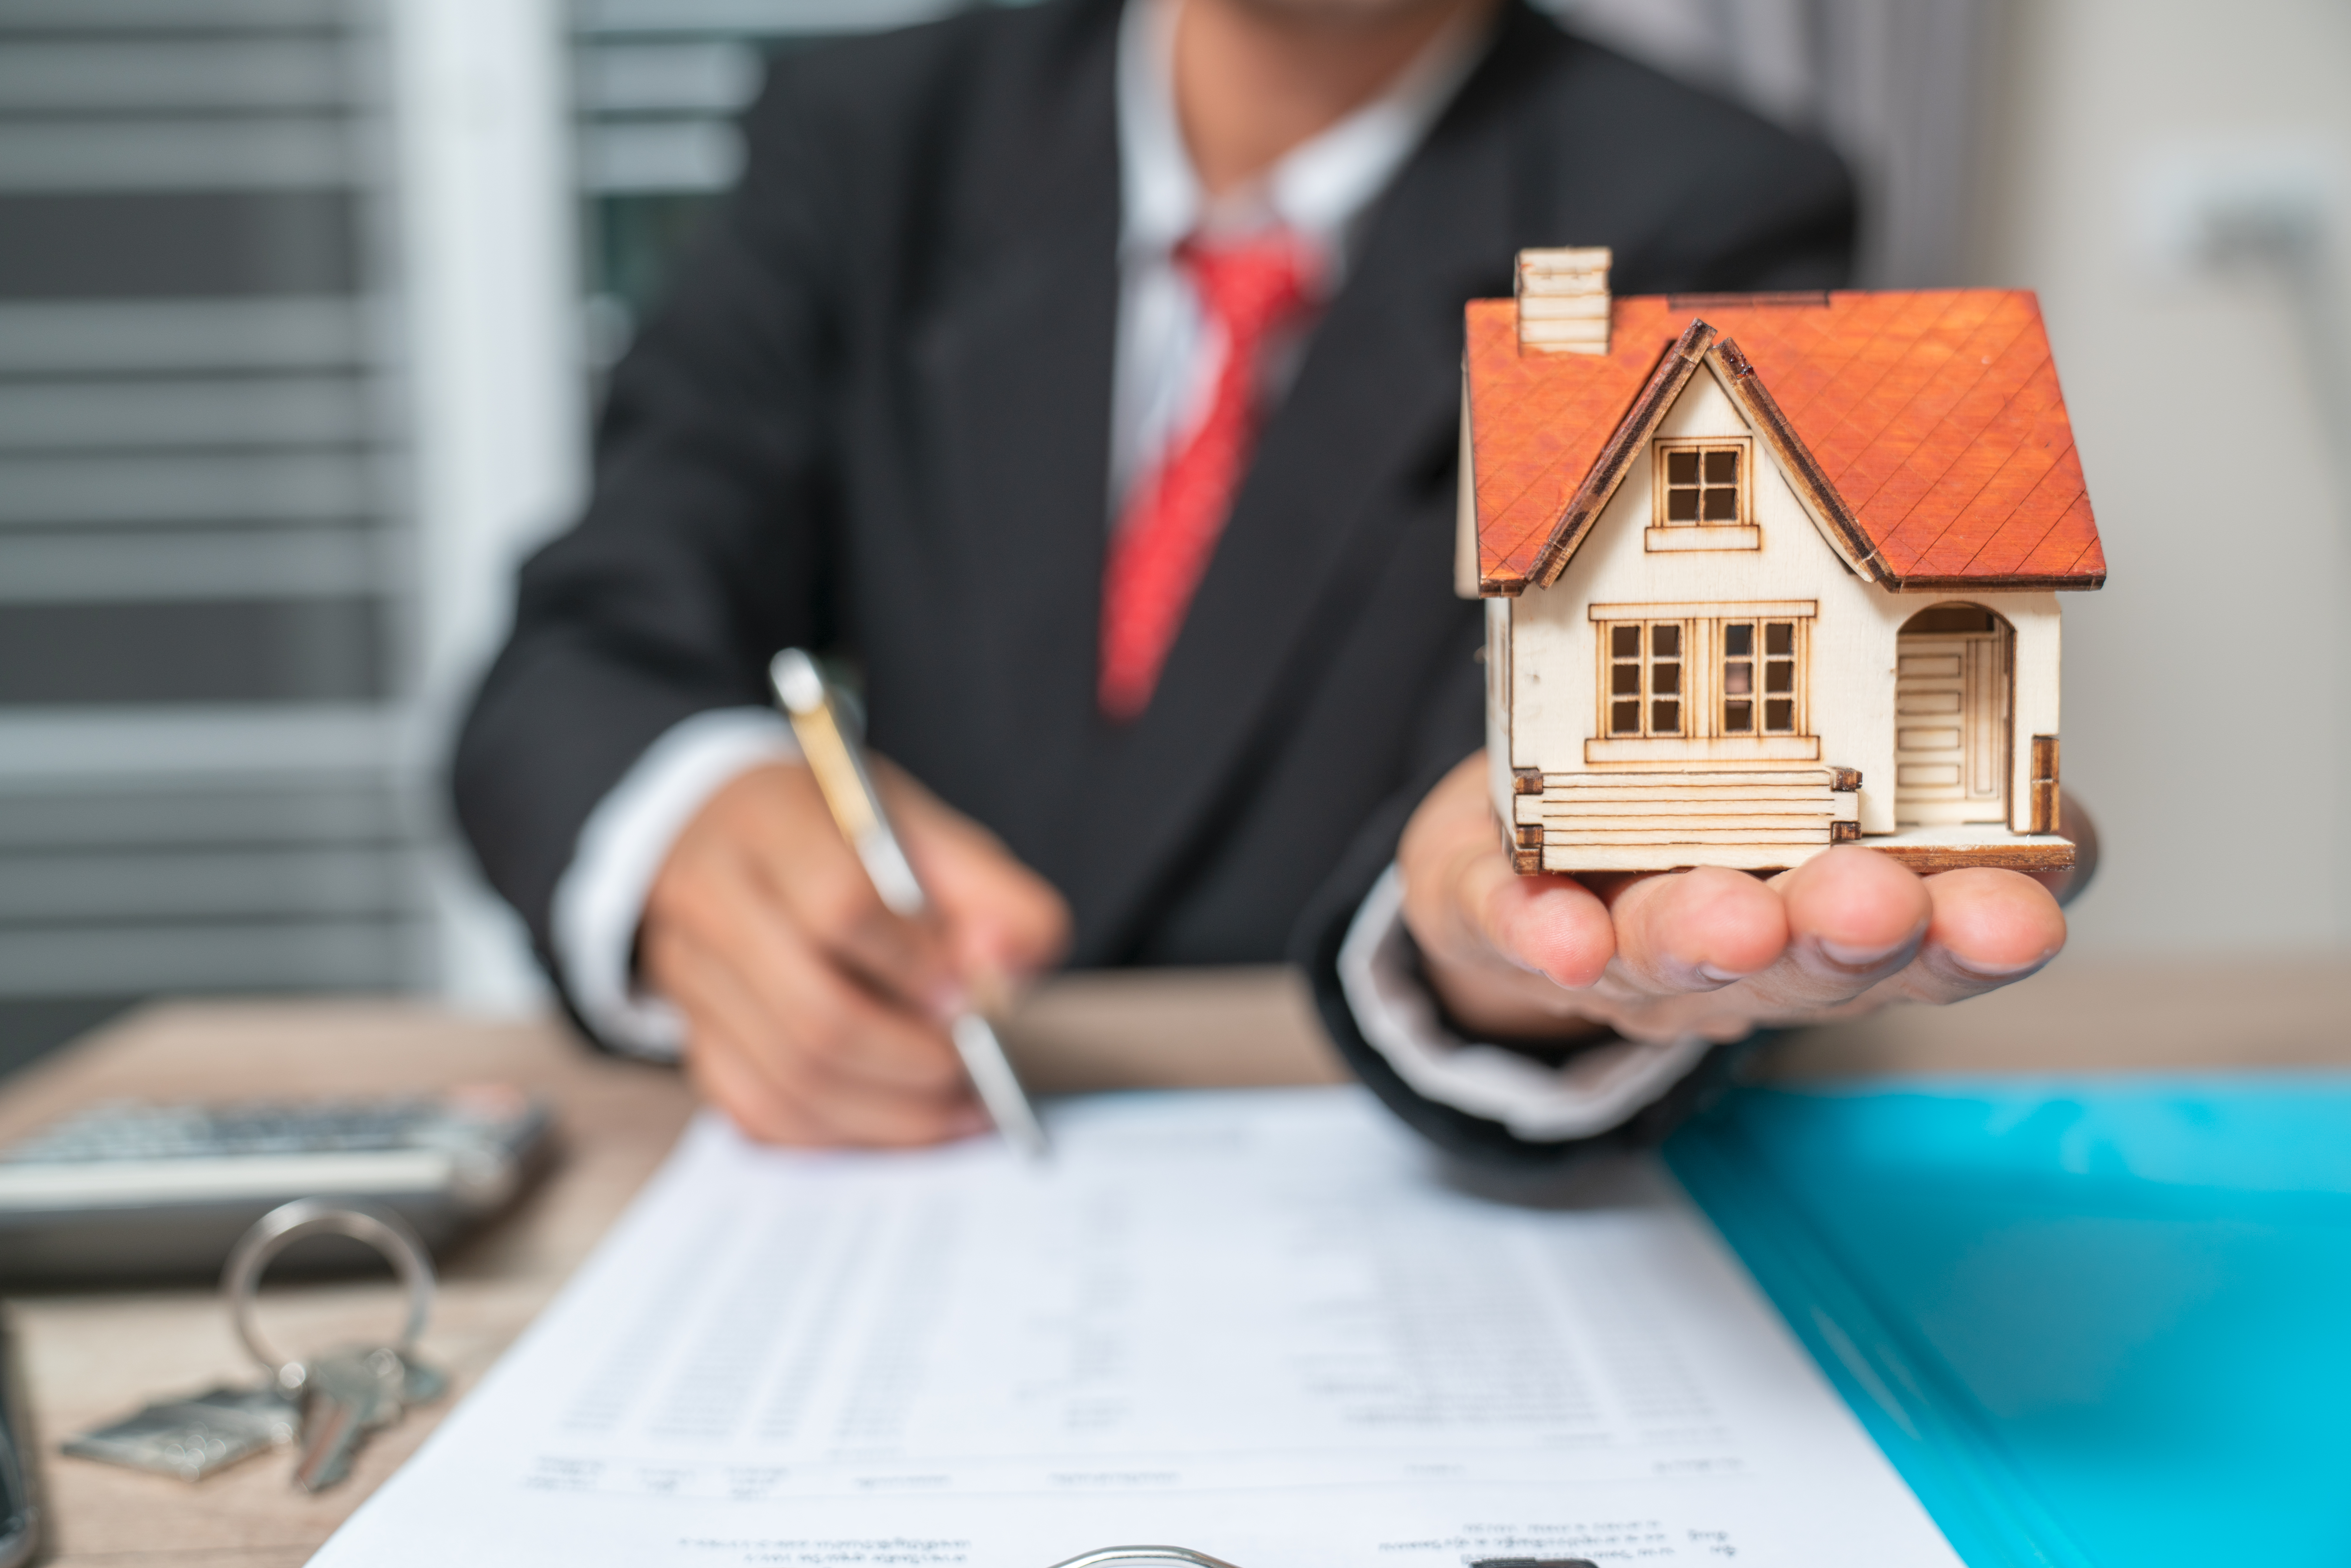 Best Mortgage Lenders 2020.A Key Change To Mortgage Lending Rules Is Coming In 2021